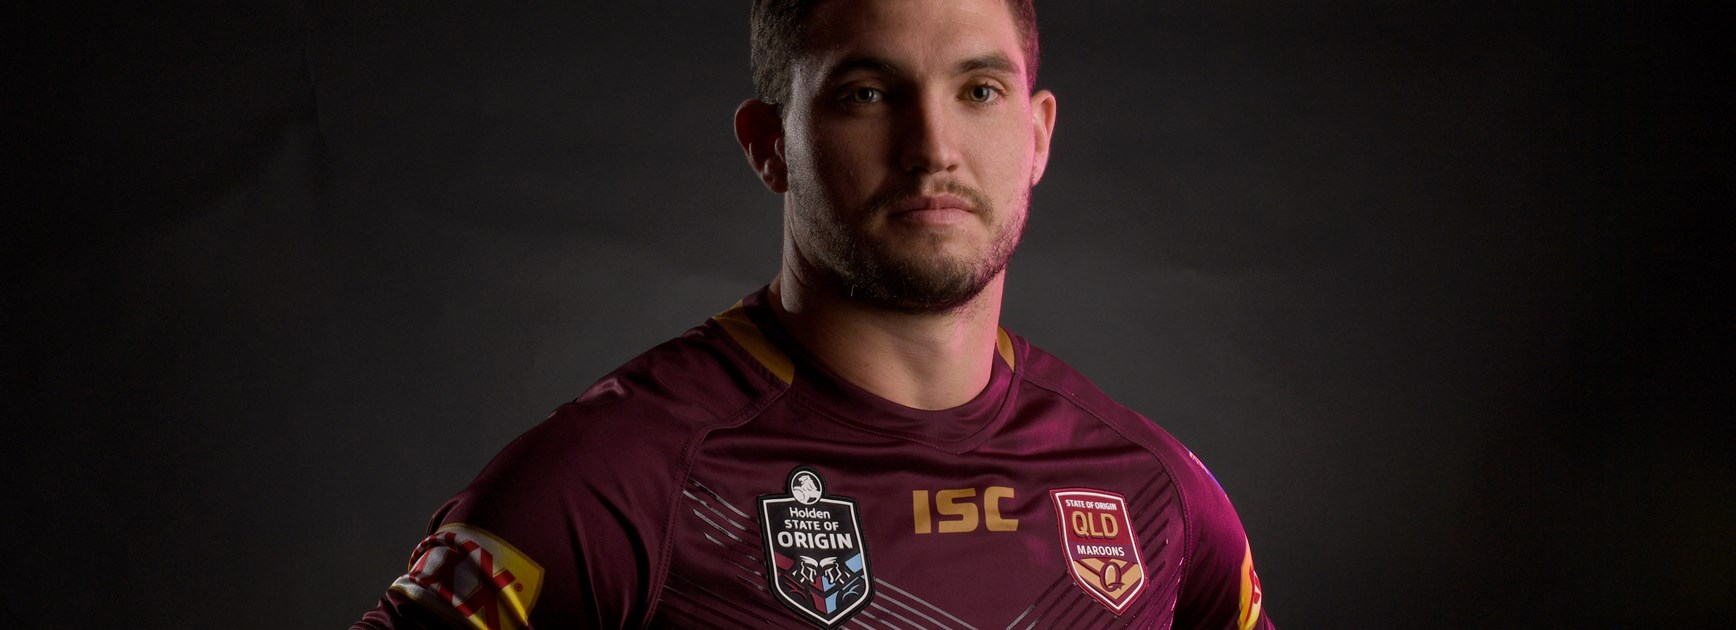 'Origin brings out anger': Oates